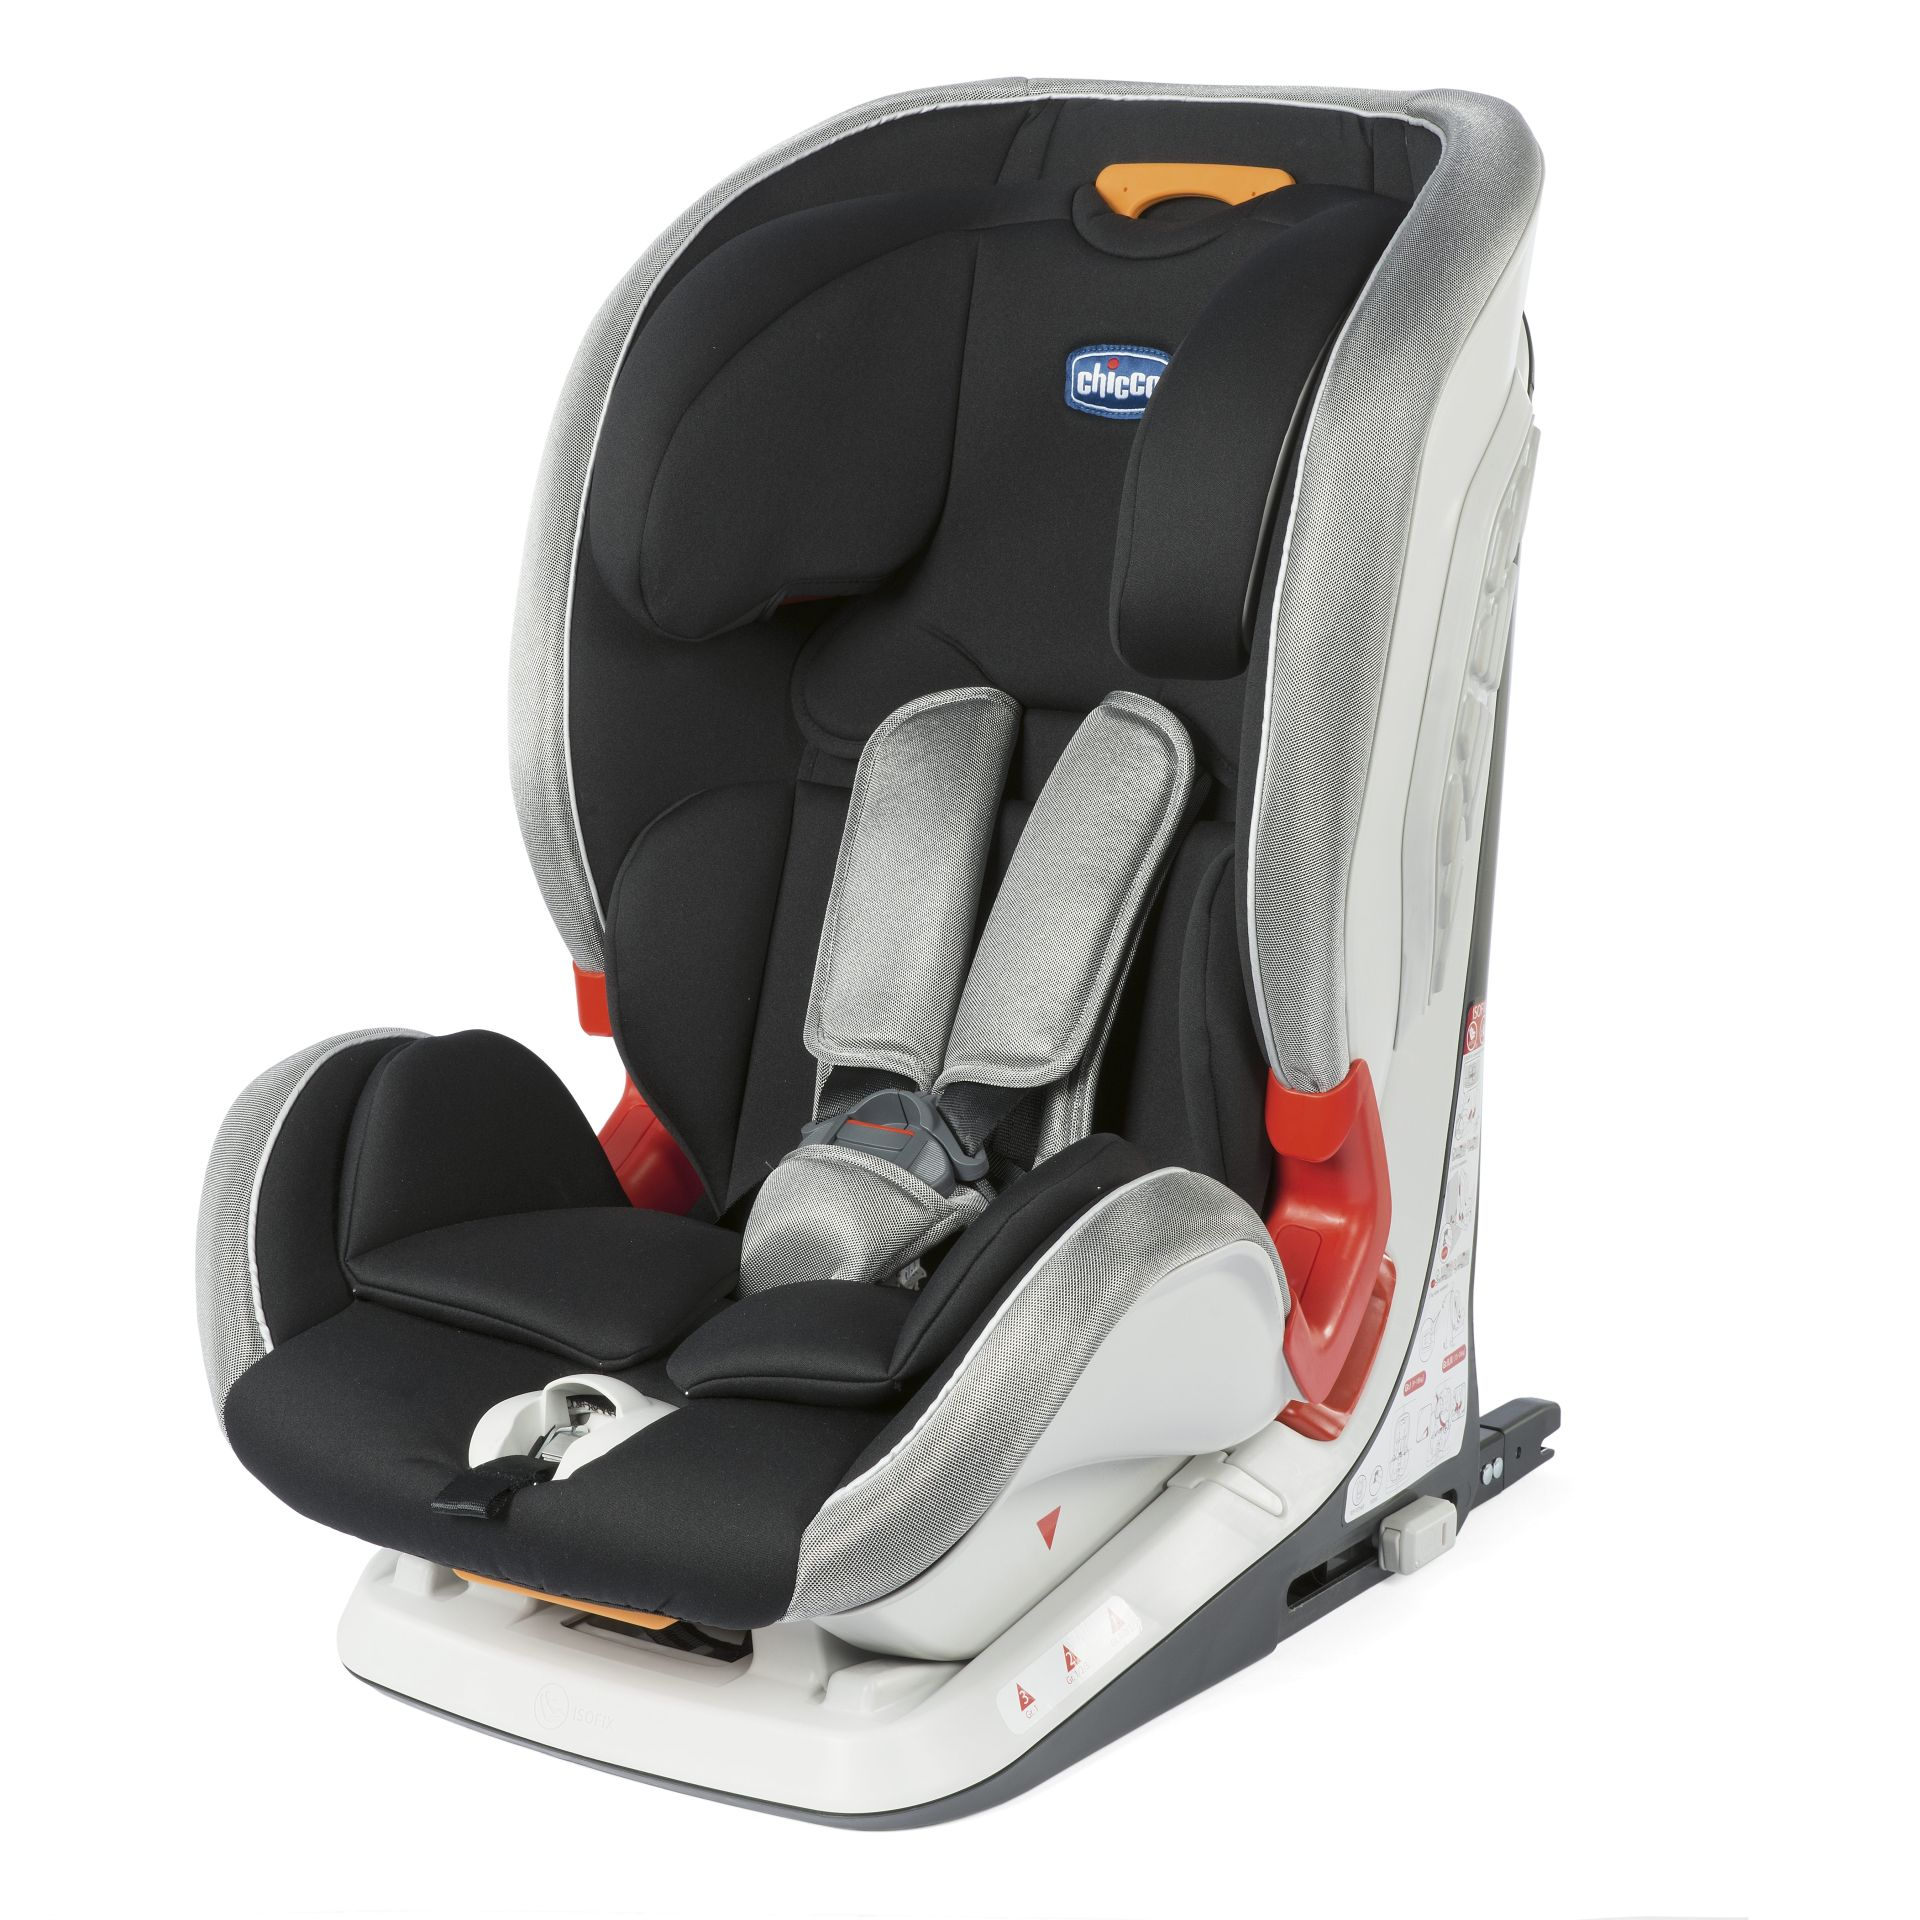 Chicco Child Car Seat YOUniverse Fix 2019